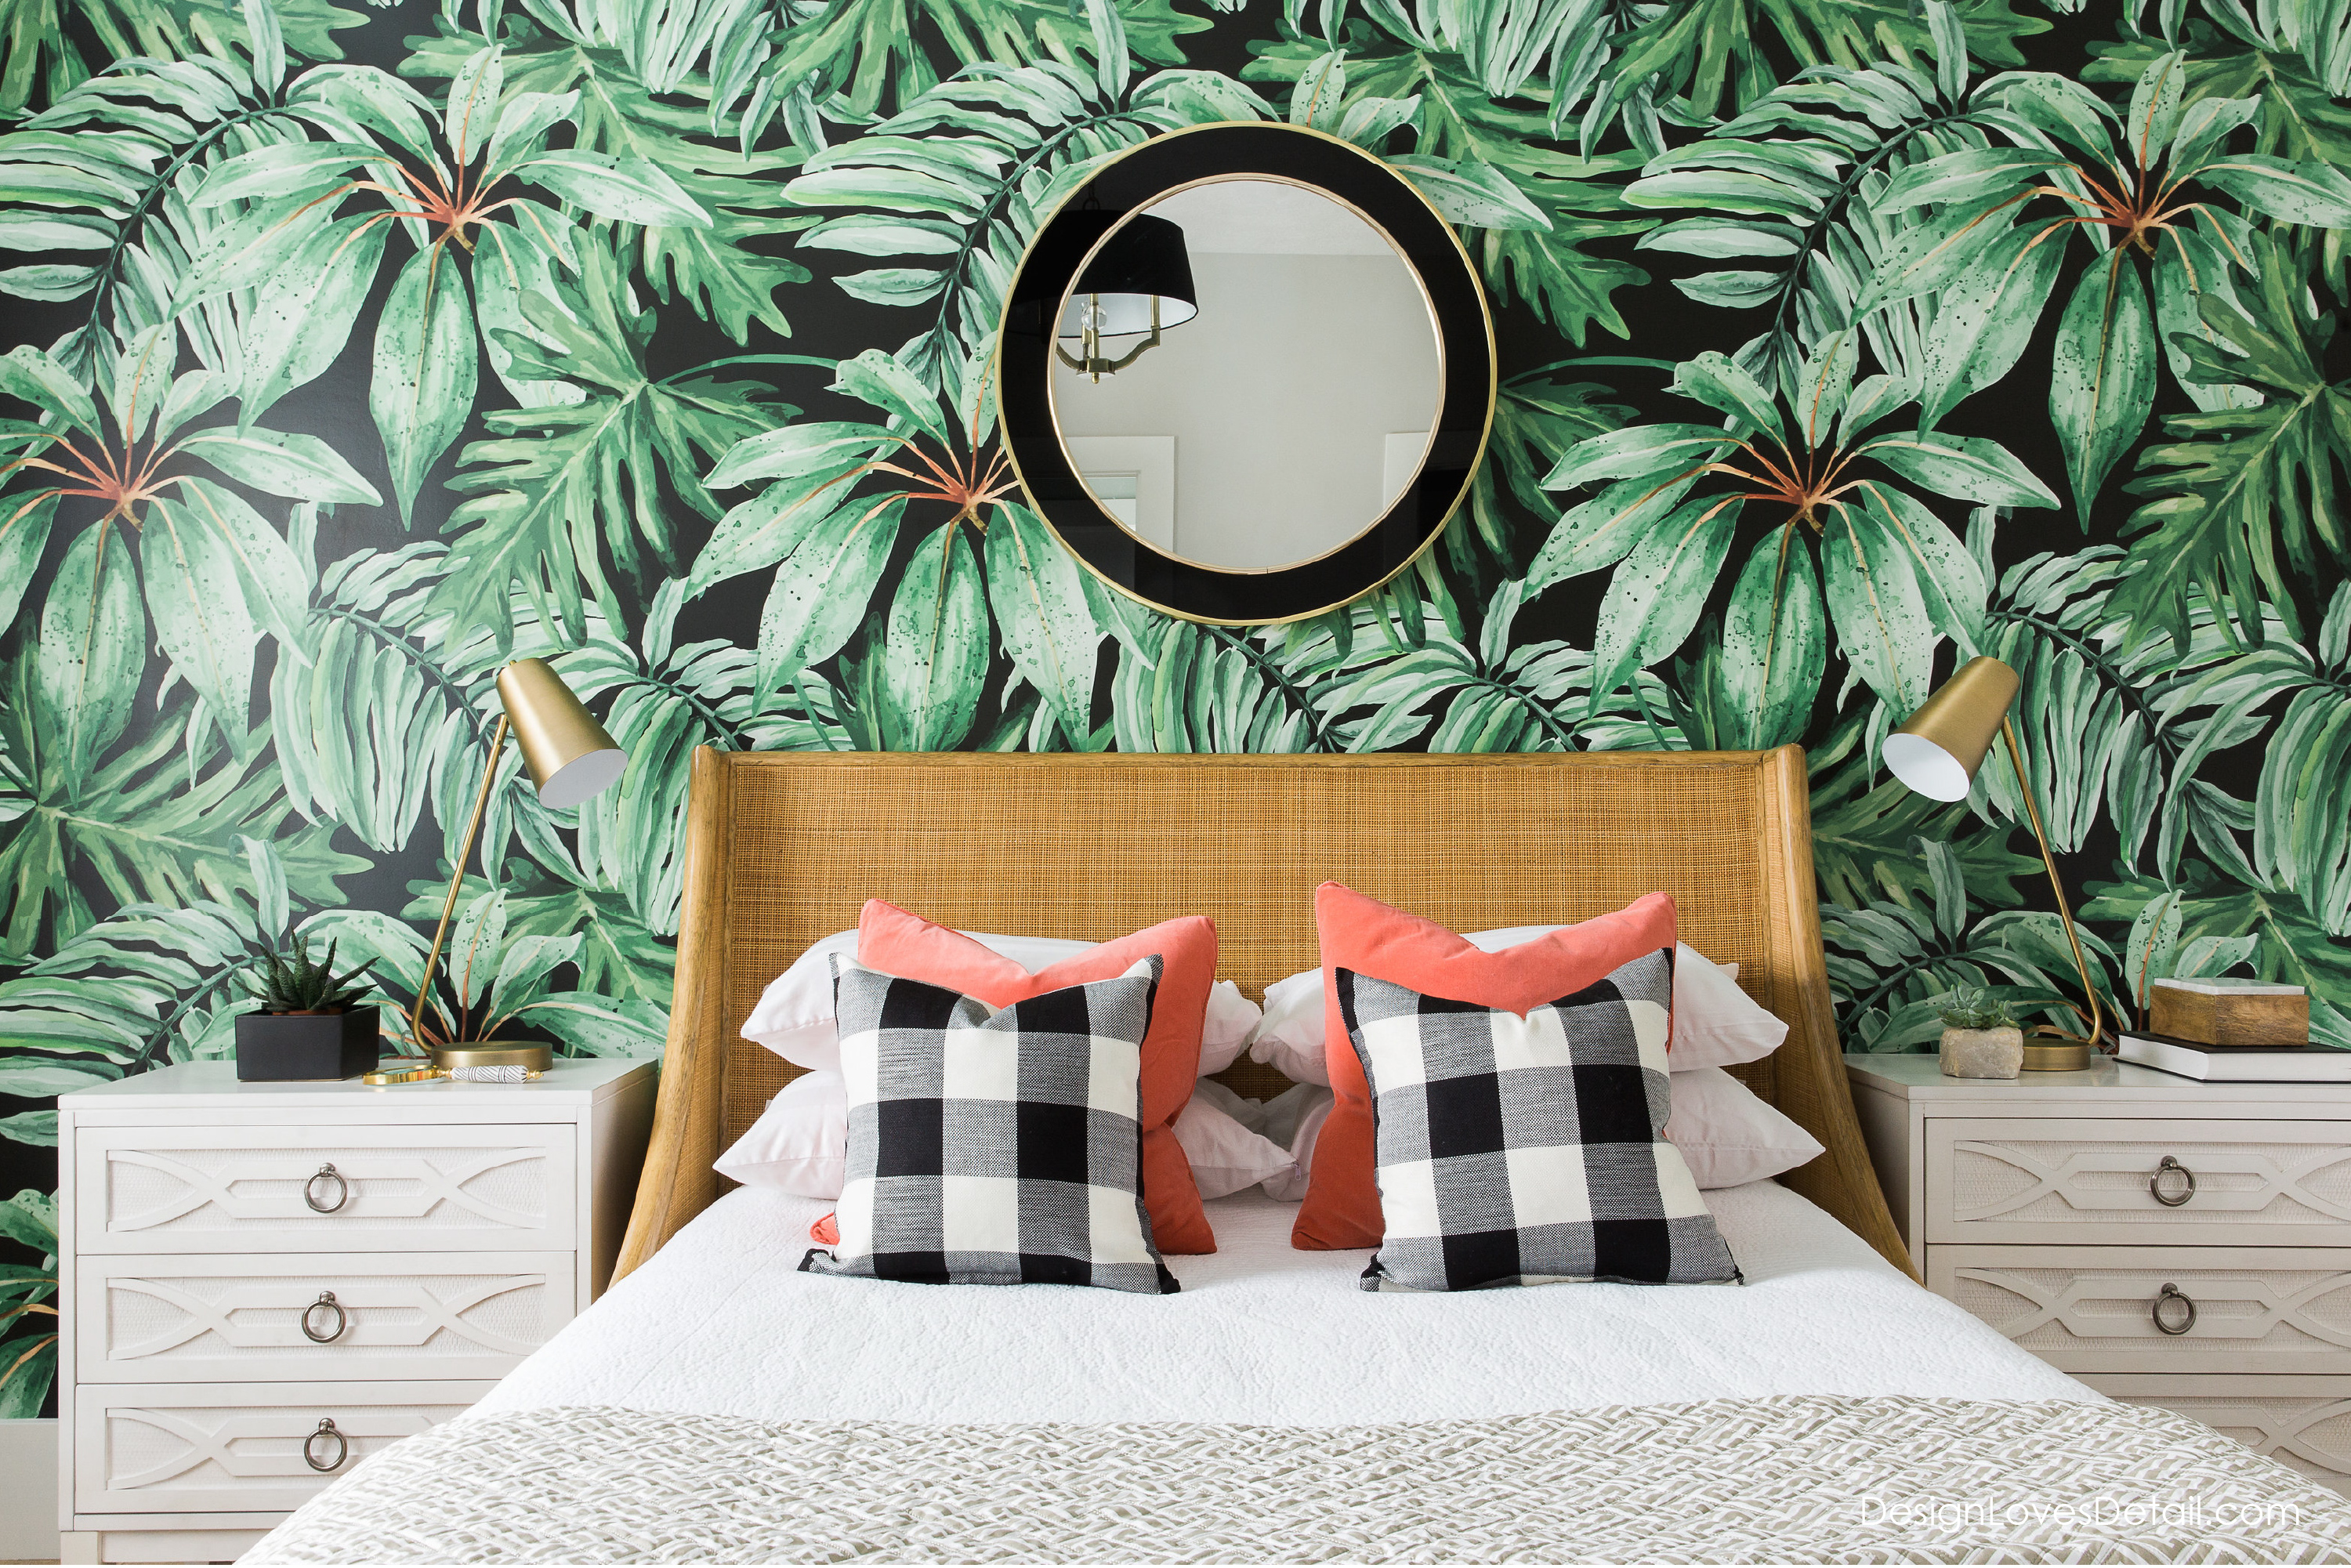 I'm obsessed with this bedroom & wallpaper by designlovesdetail.com. click the link for product details!